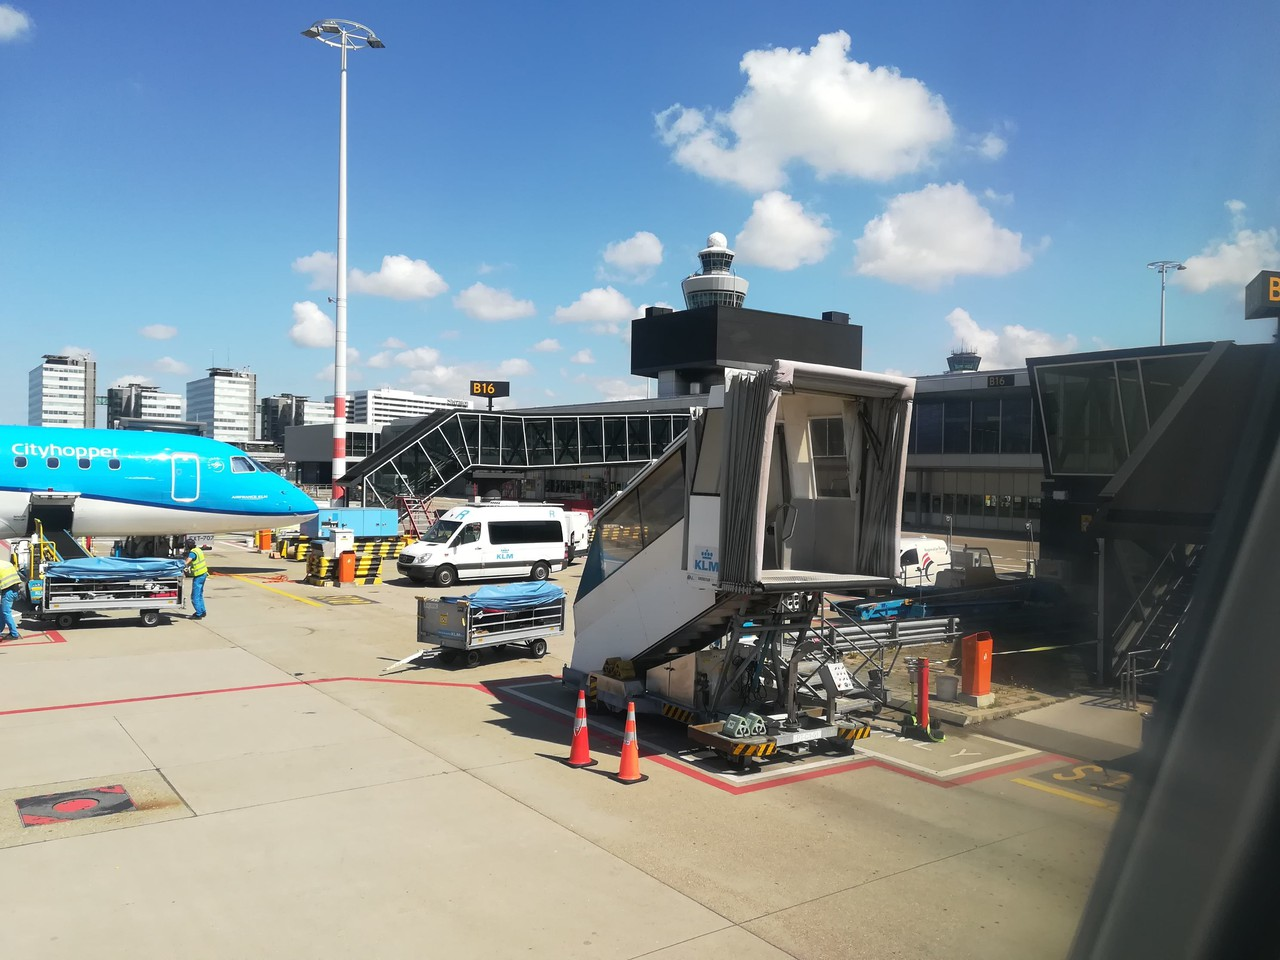 Review of KLM flight from Amsterdam to Venice in Business